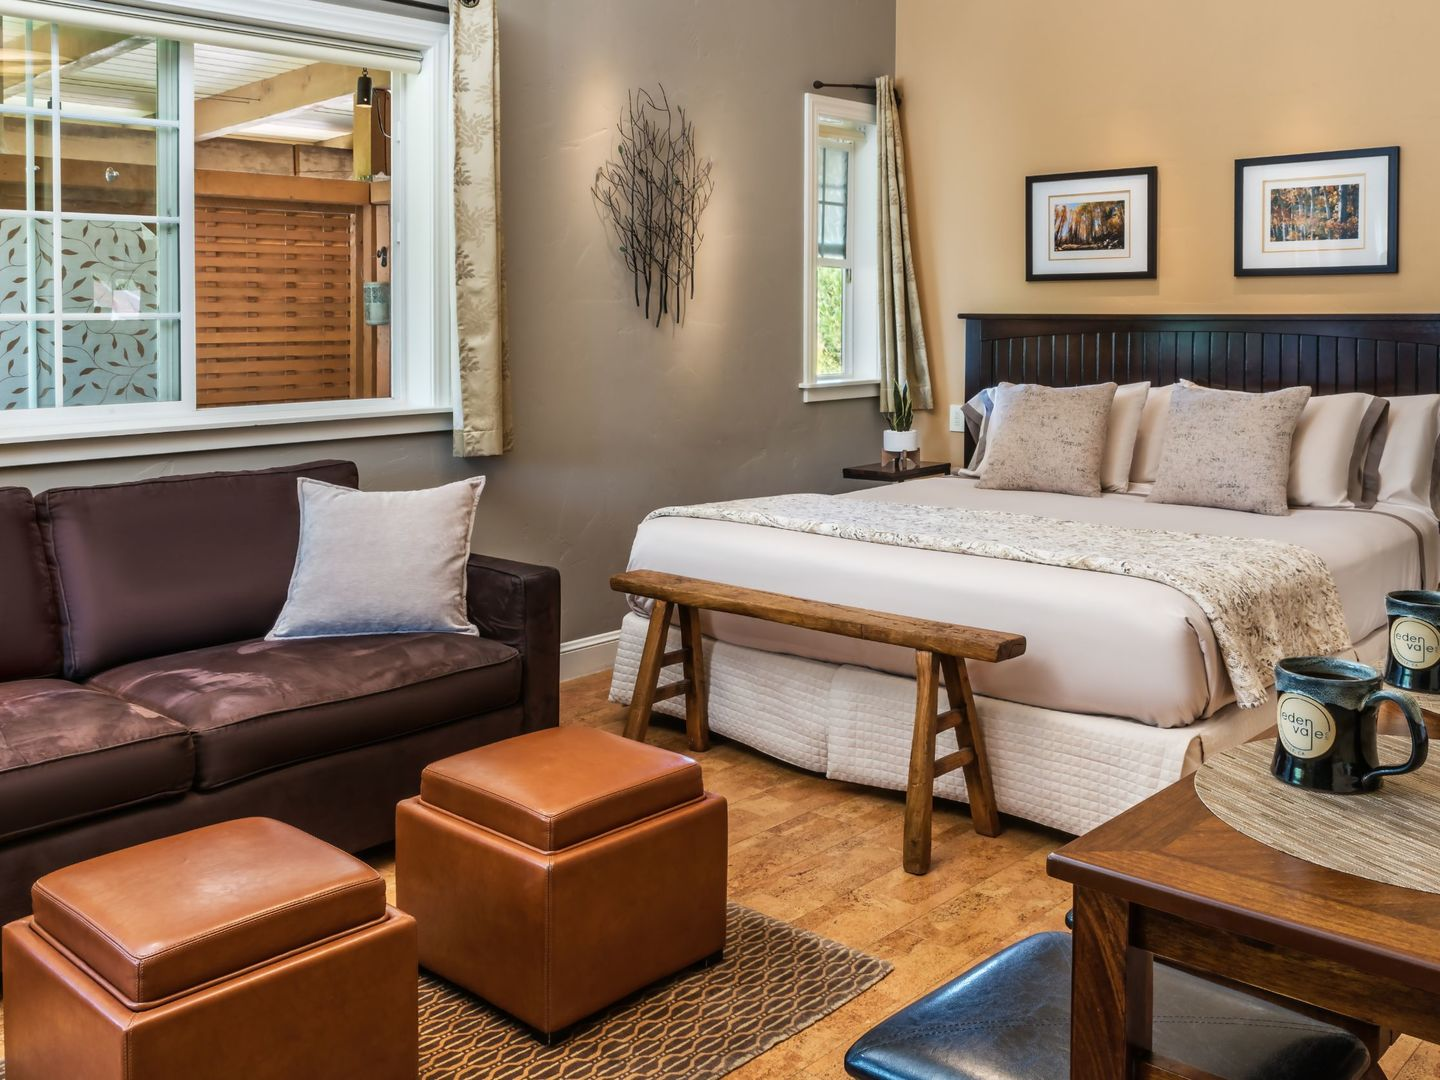 A living room filled with furniture and a large window at Eden Vale Inn.